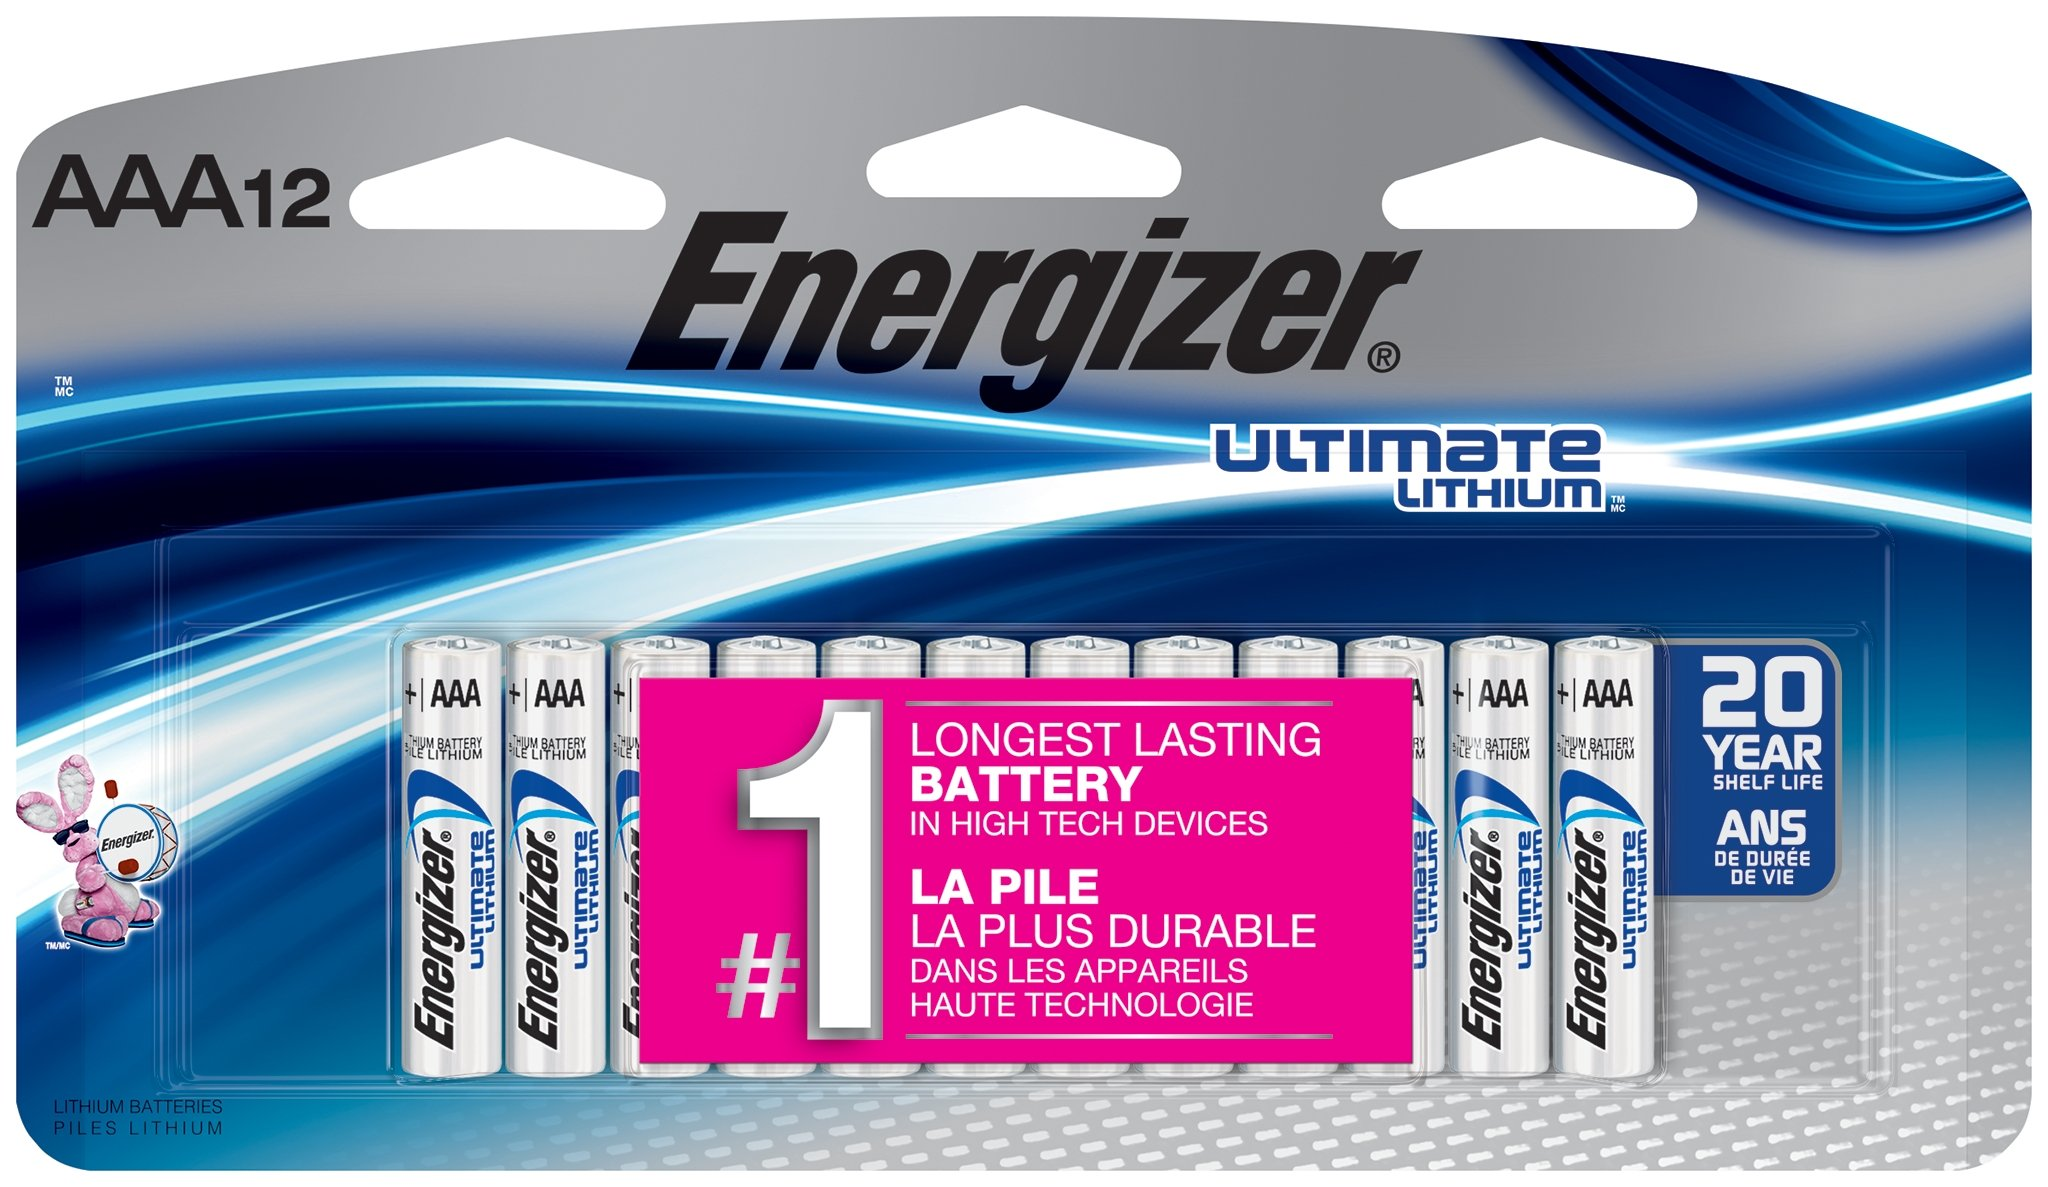 Evel91 Energizer Ultimate Lithium L91 General Purpose Arta Cutaway Diagram Show A Typical Alkaline Cell Or Battery With Aaa Batteries